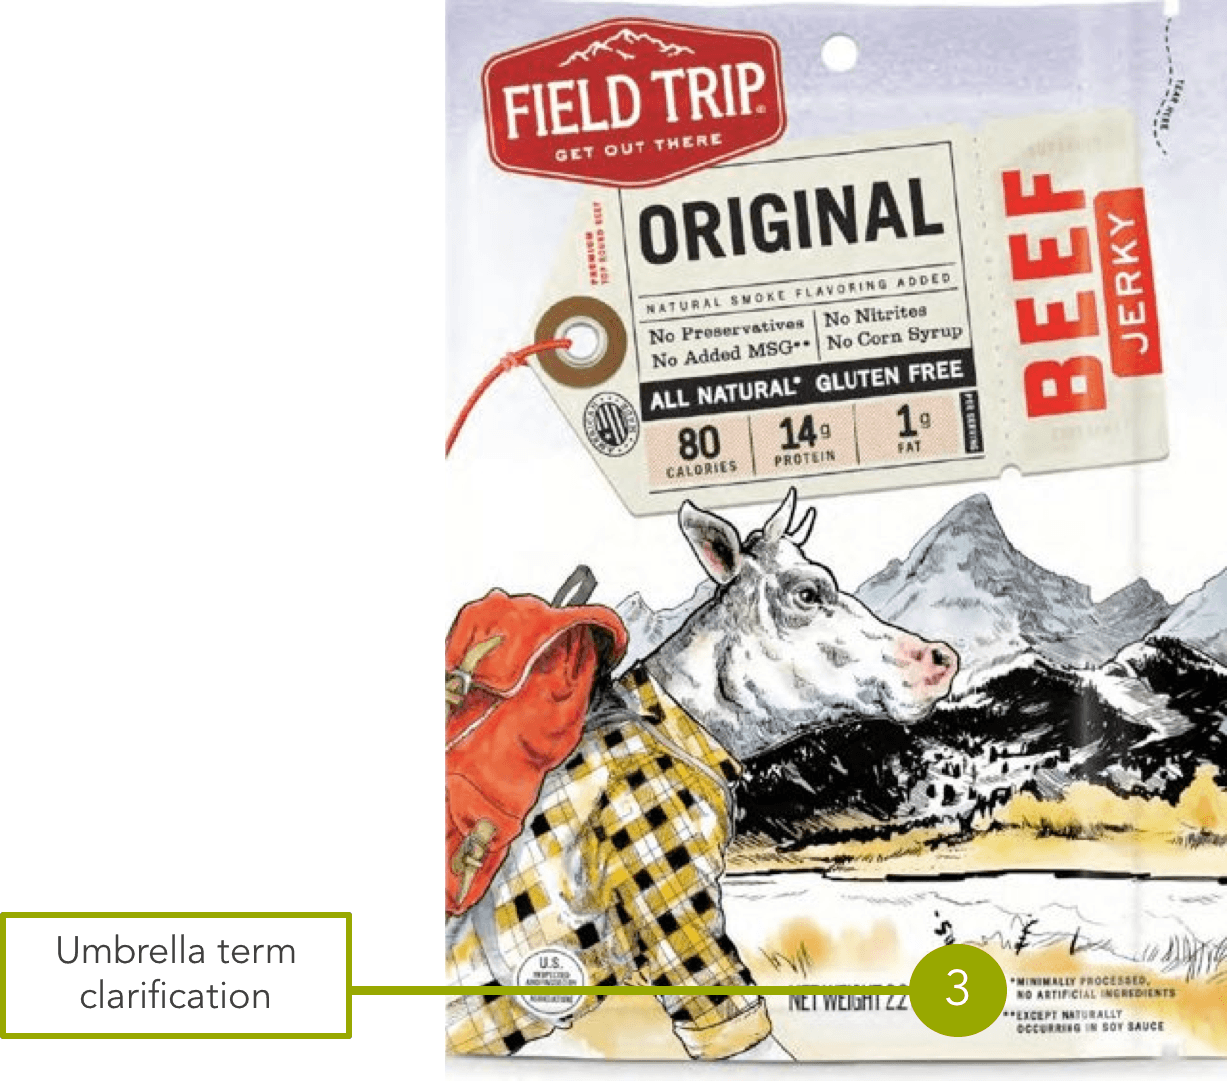 Field Trip beef jerky packaging featuring the clarification of the displayed umbrella terms.